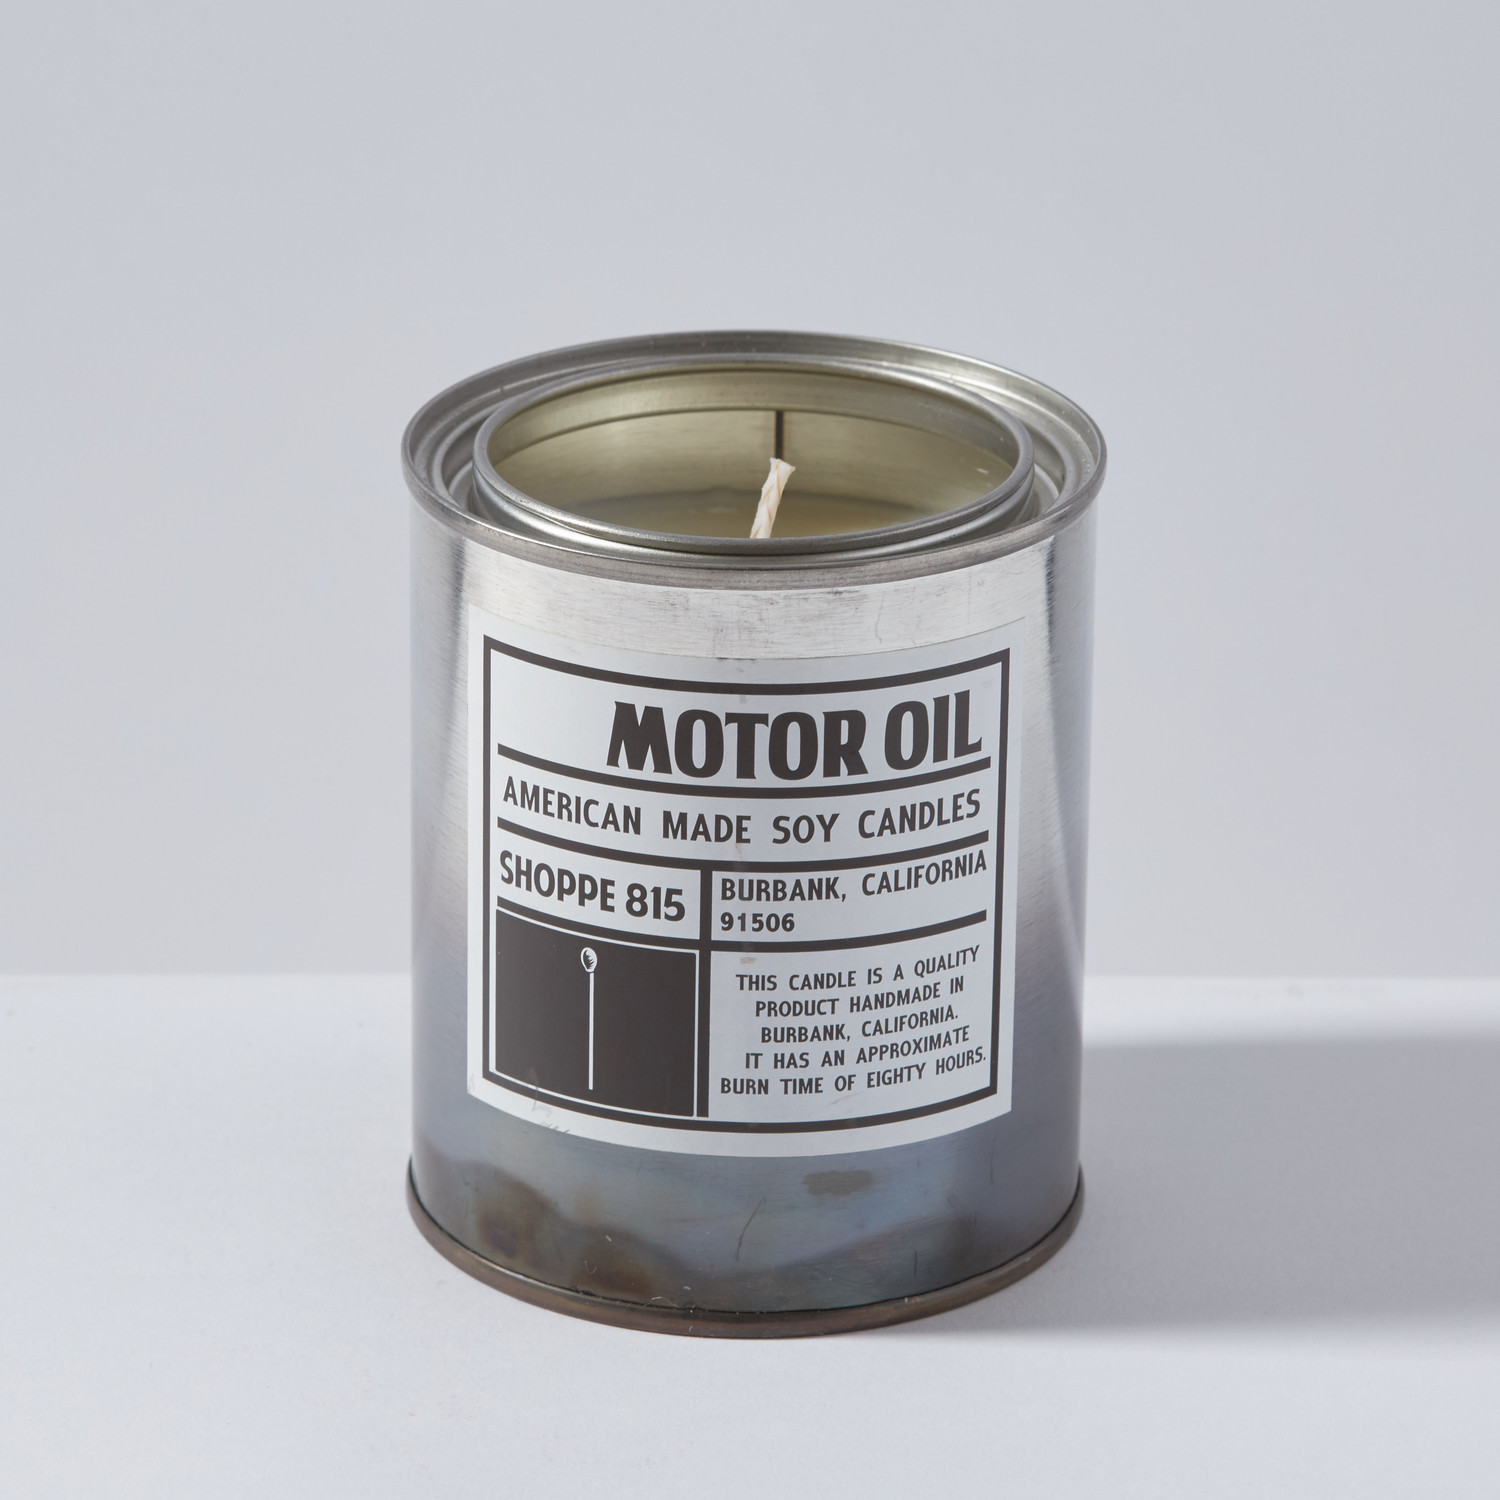 Motor oil candle shoppe 815 touch of modern for Sales on motor oil